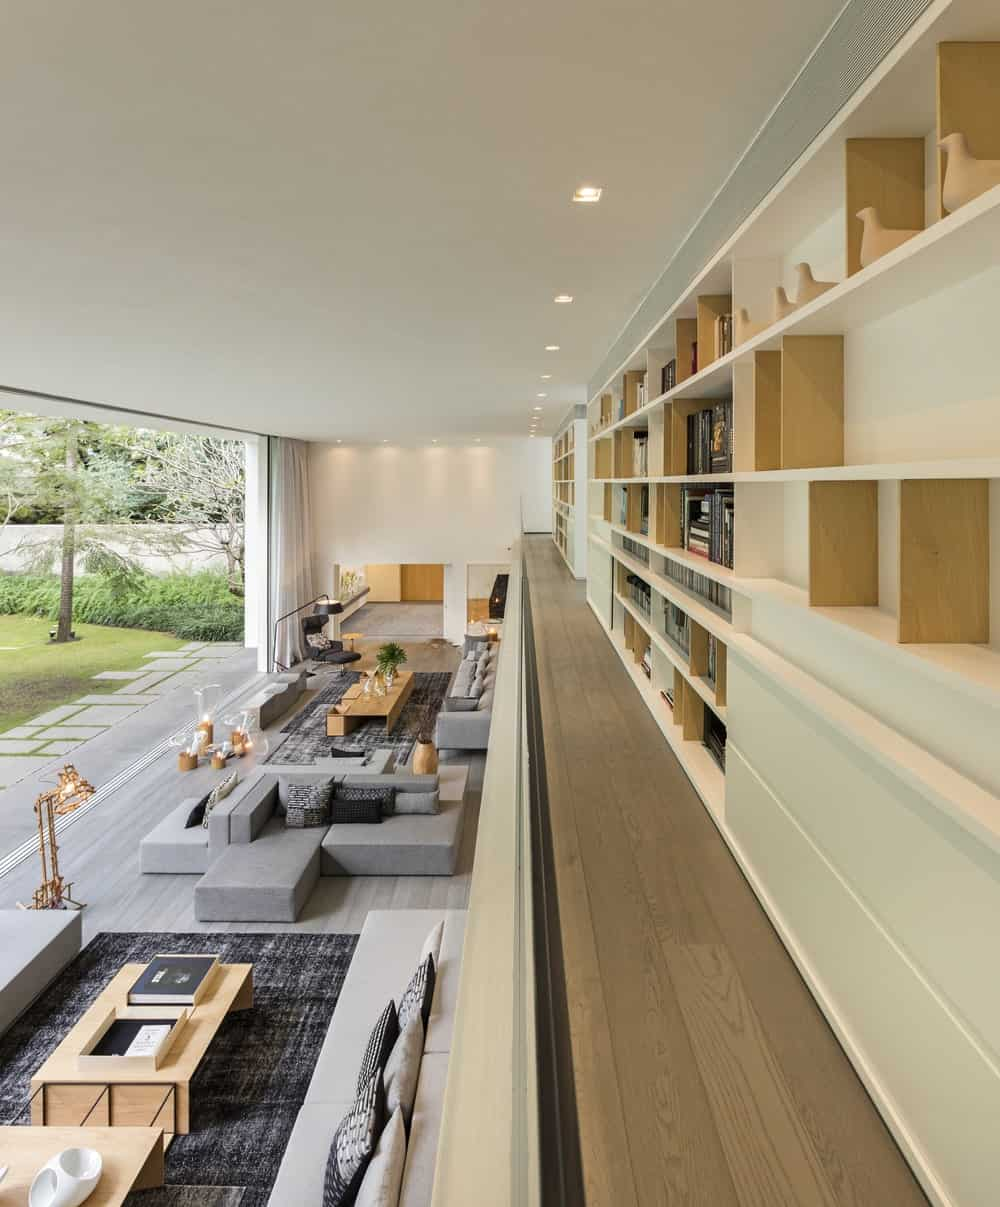 Library overlooking the living room below in the Gama Issa v2.0 designed by studio mk27.